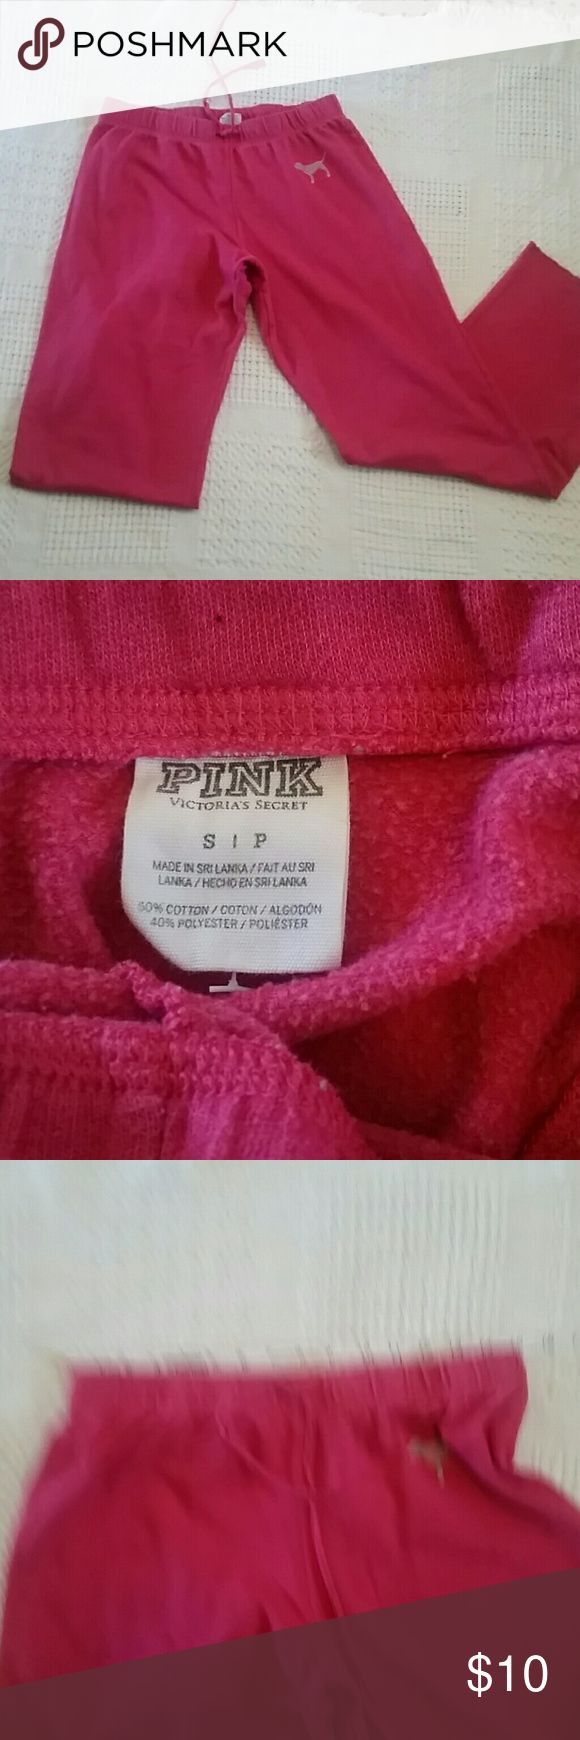 Victoria's secret Pink boyfriend sweatpants Small pink Victoria's secret boyfriend sweatpants, last pic shows marks, price reflects use PINK Pants Track Pants & Joggers